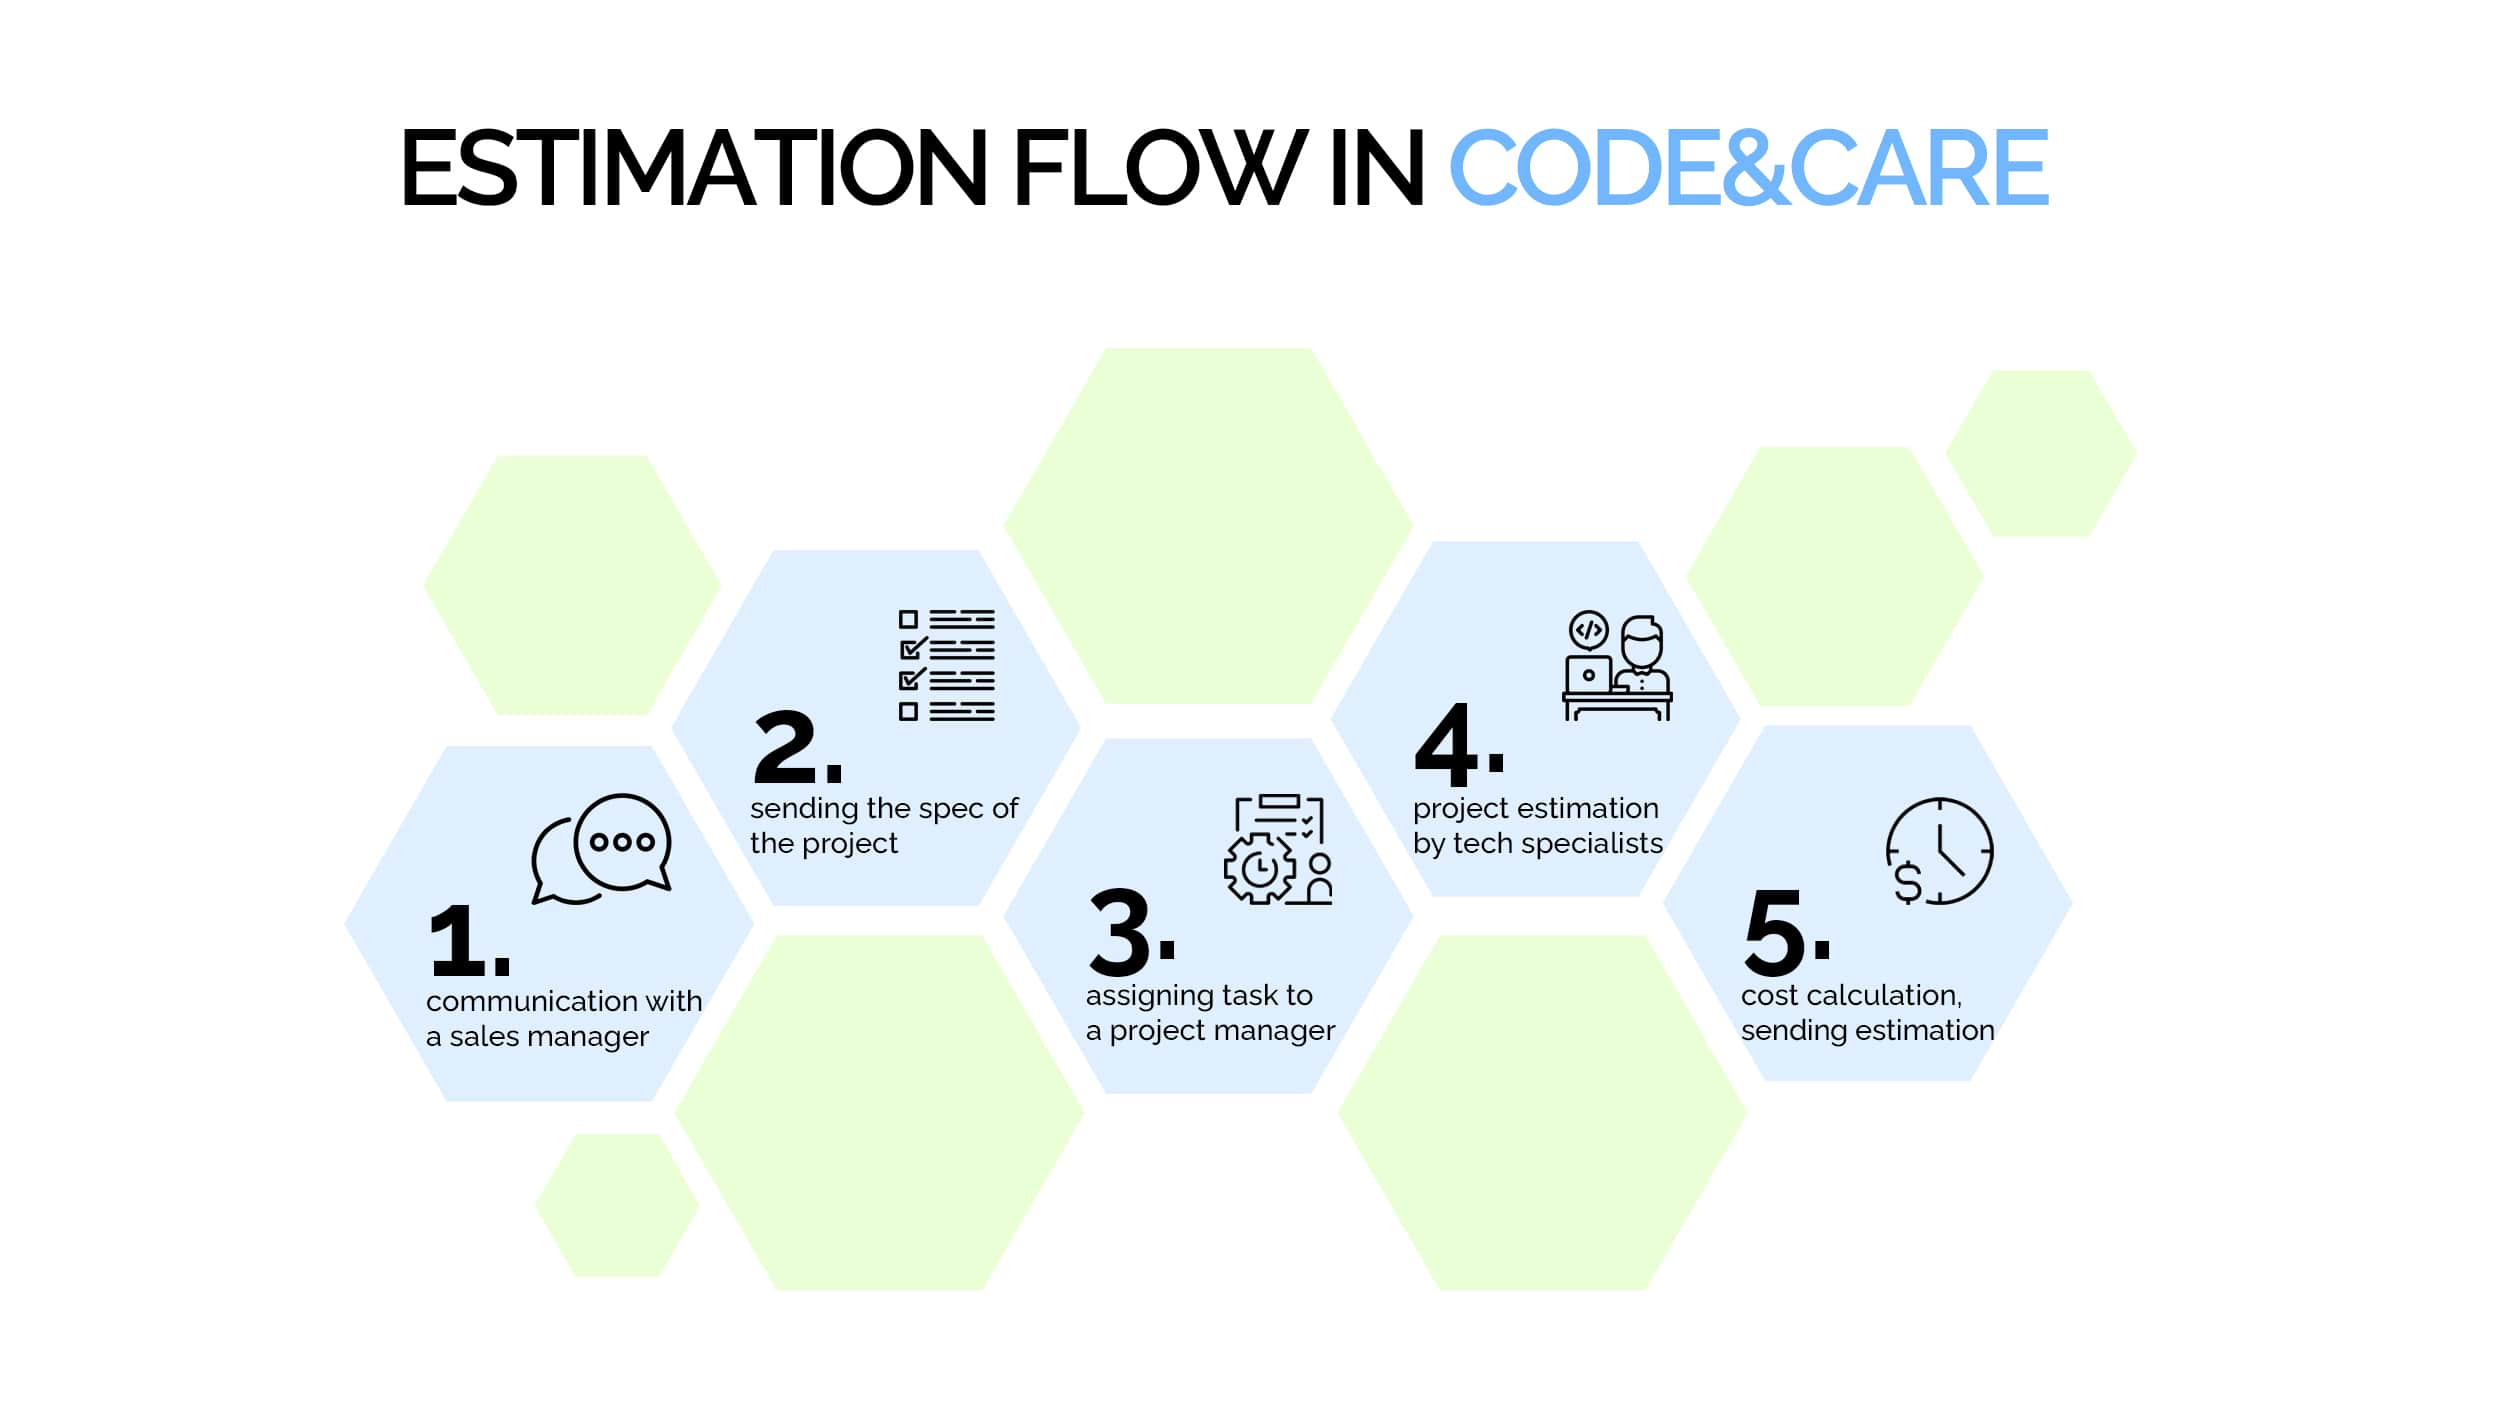 Estimation flow in Code&Care